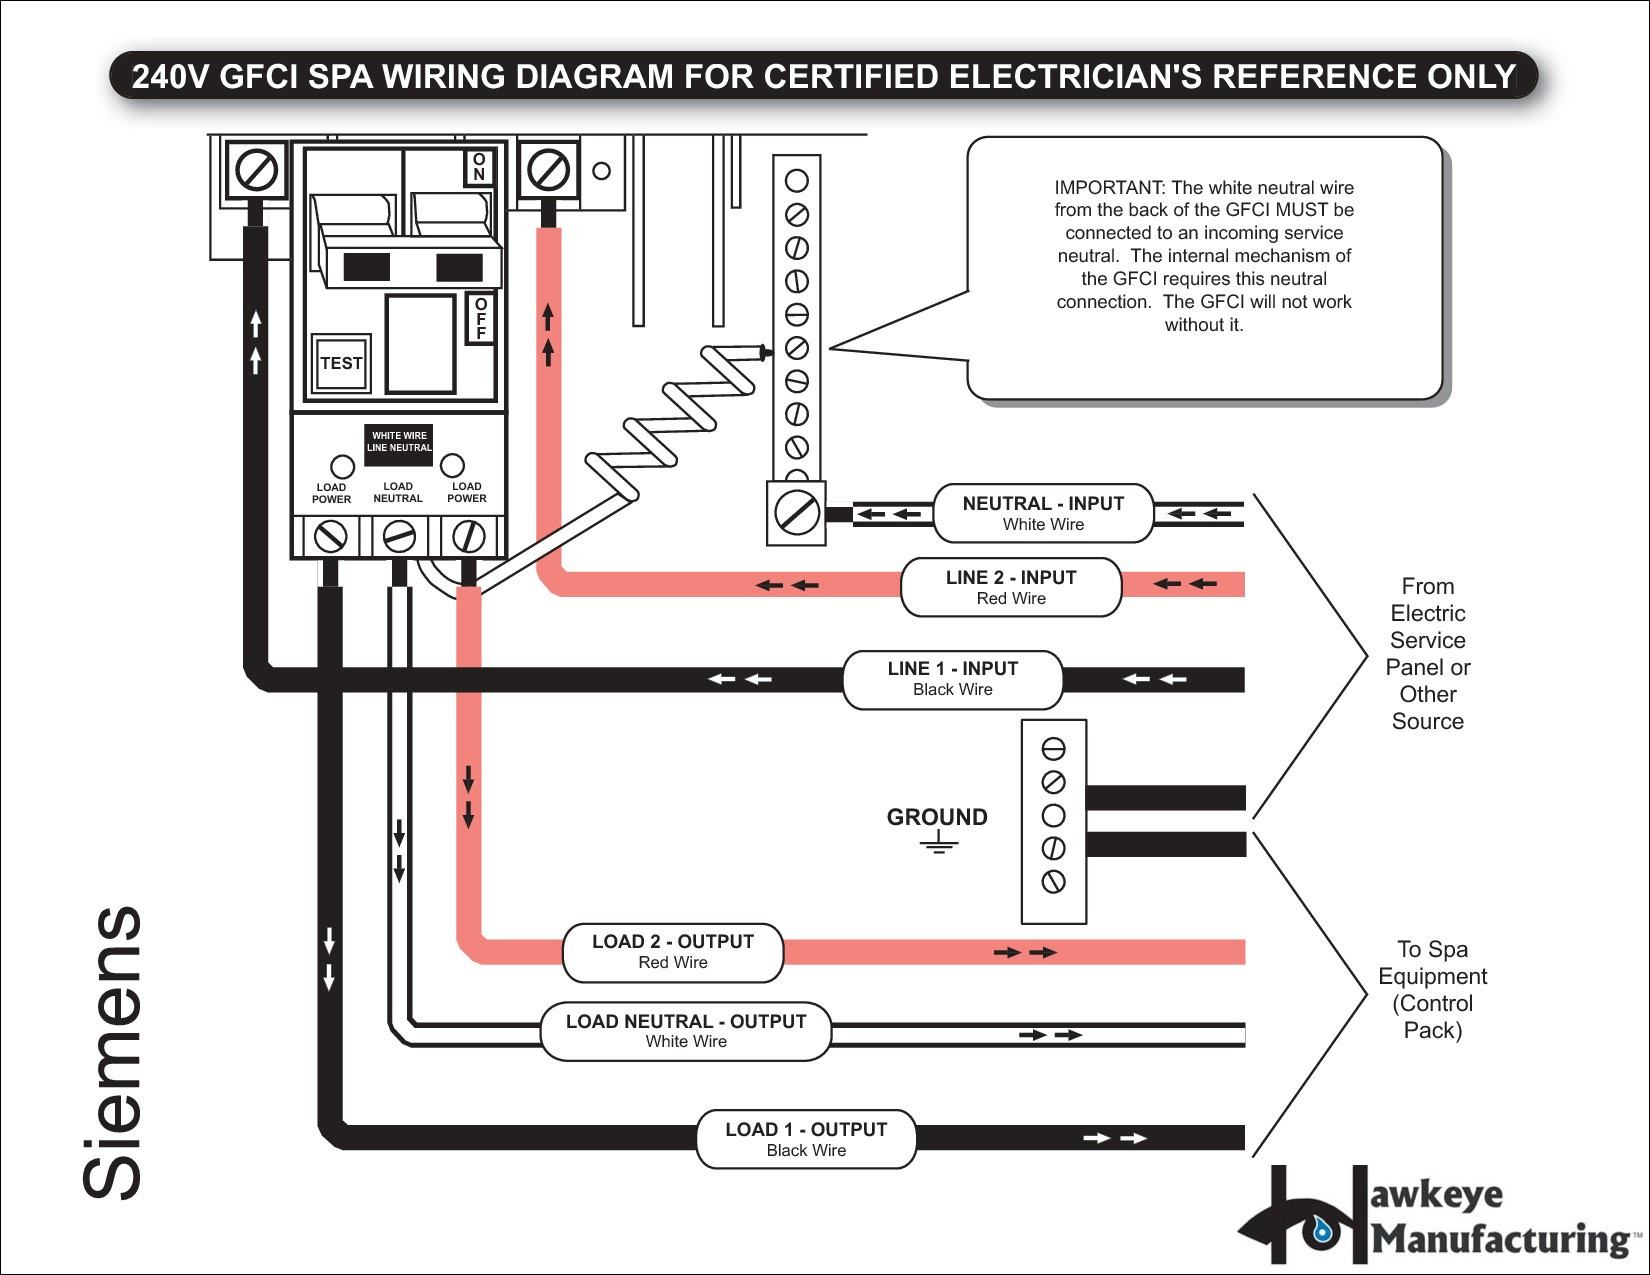 gfci wiring diagrams with garage rh 1333  wiring diagram as well gfci wiring multiple outlets  wiring diagram as well gfci wiring